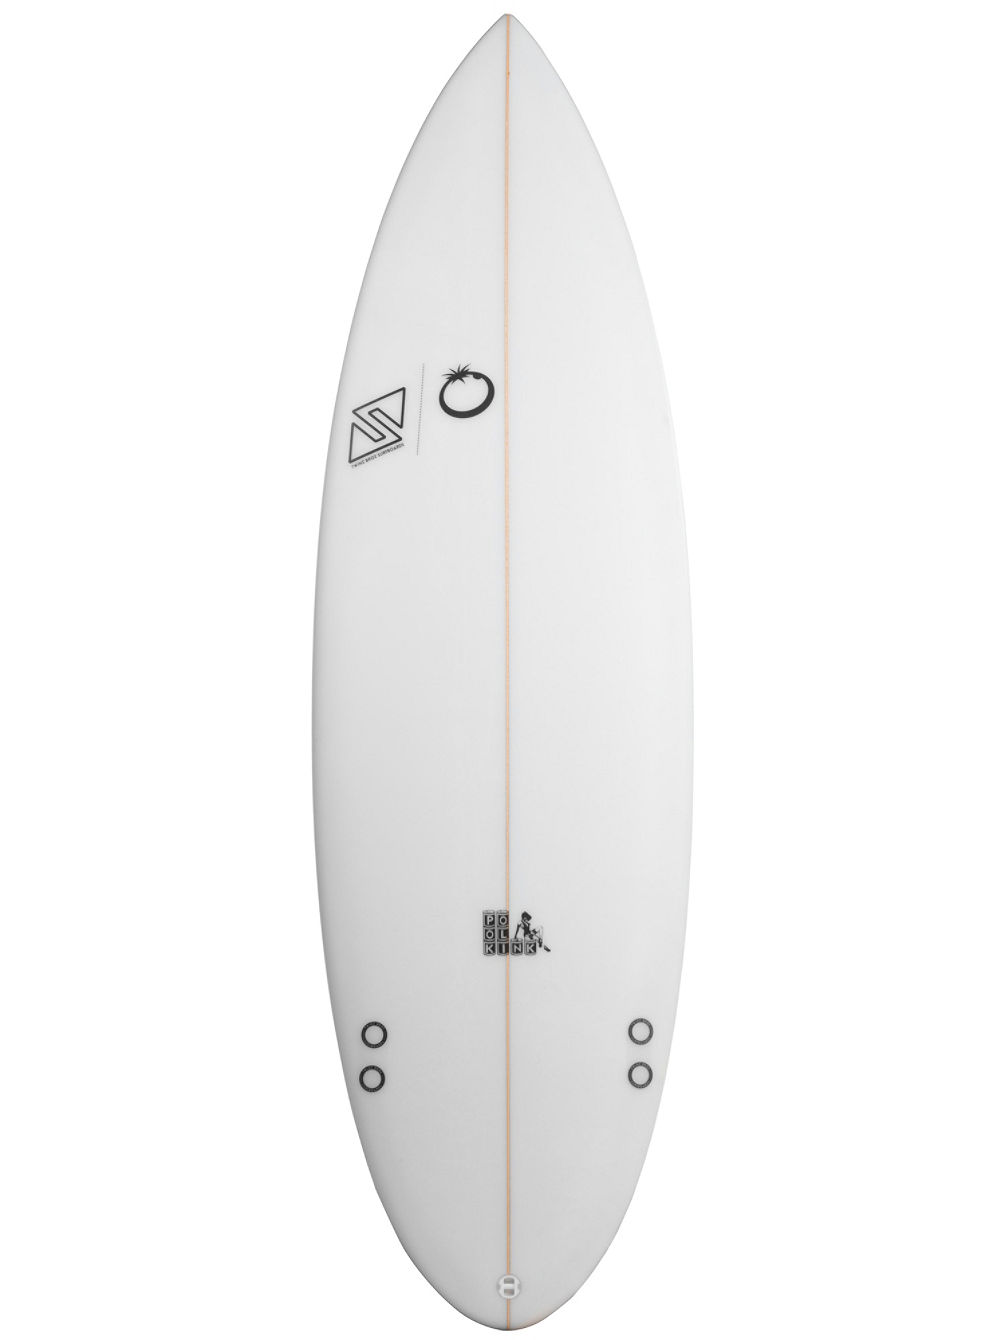 Pool Kink PU 5.4 Surfboard